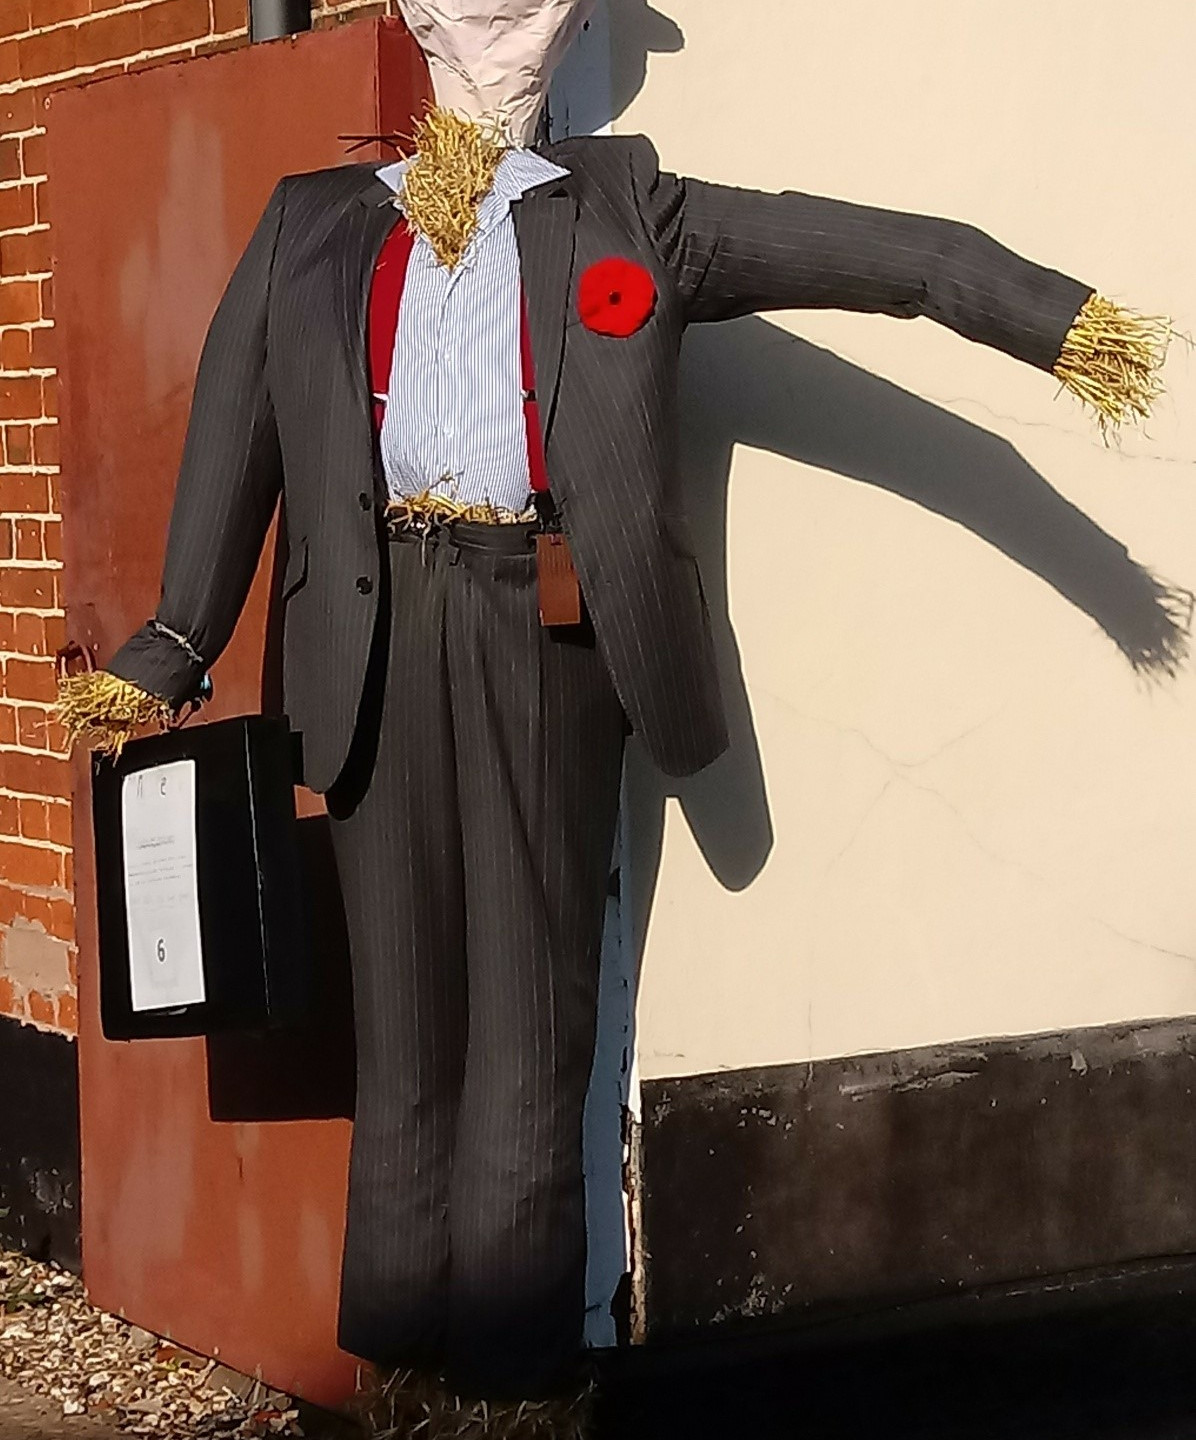 Full of business scarecrow